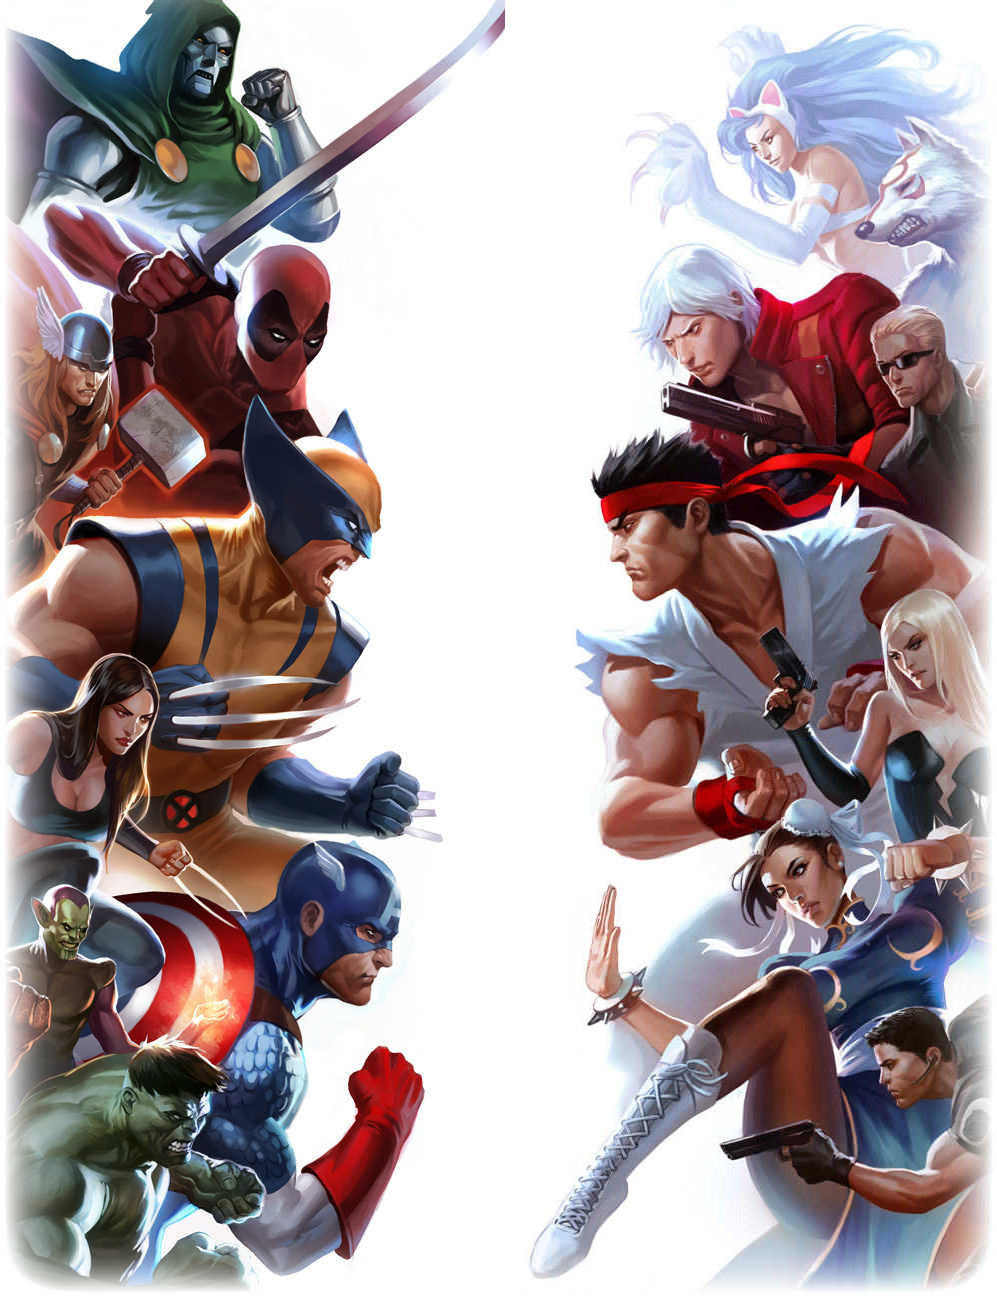 New Marvel vs. Capcom 3 character collage artwork